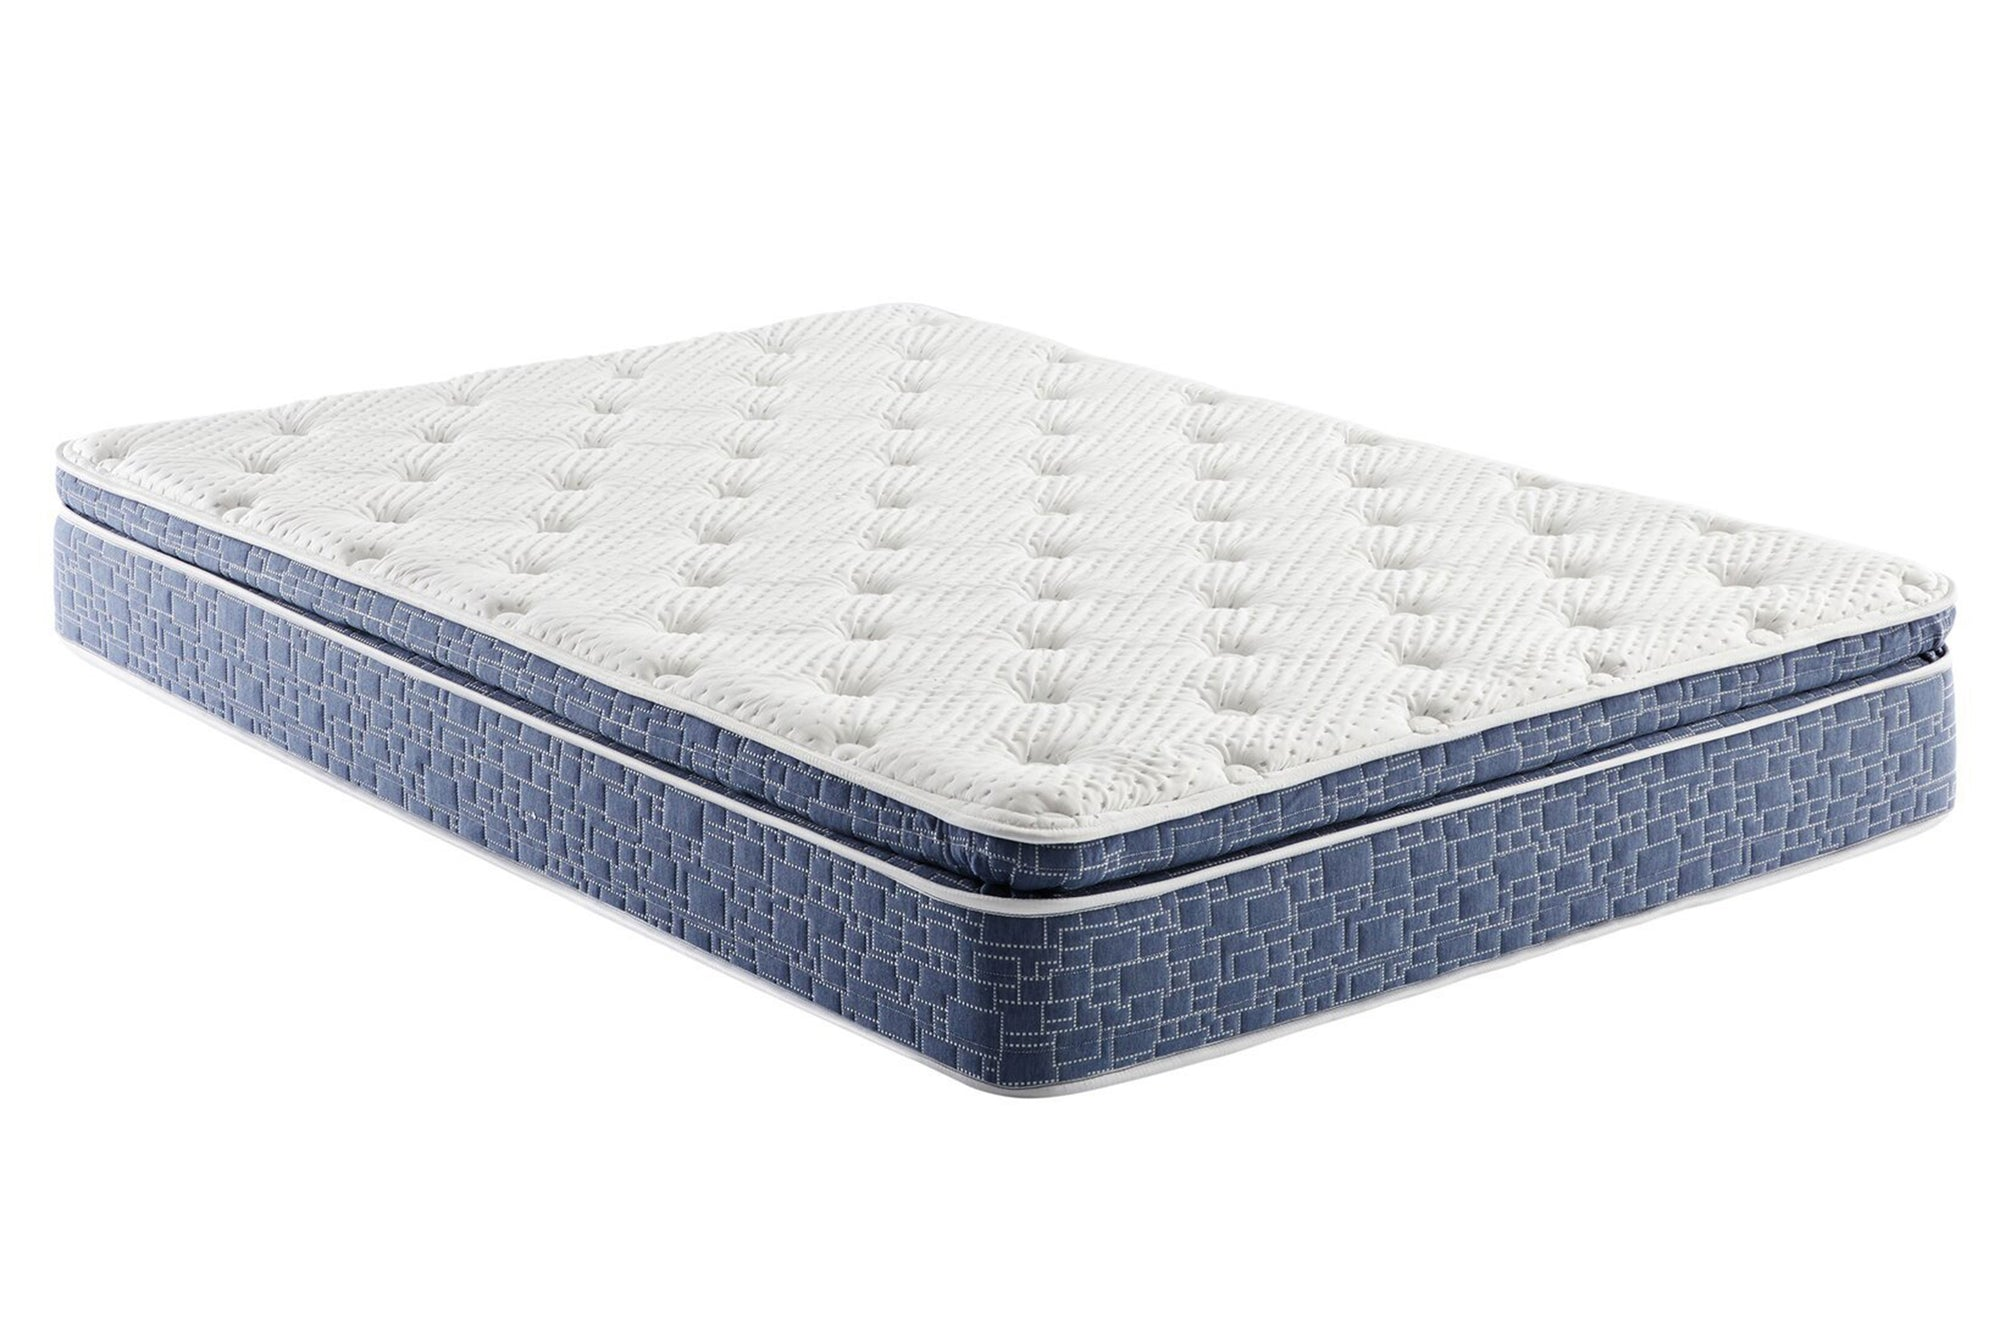 VENINI 10-inch Plush Pillow Top Support Foam and Spring Mattress